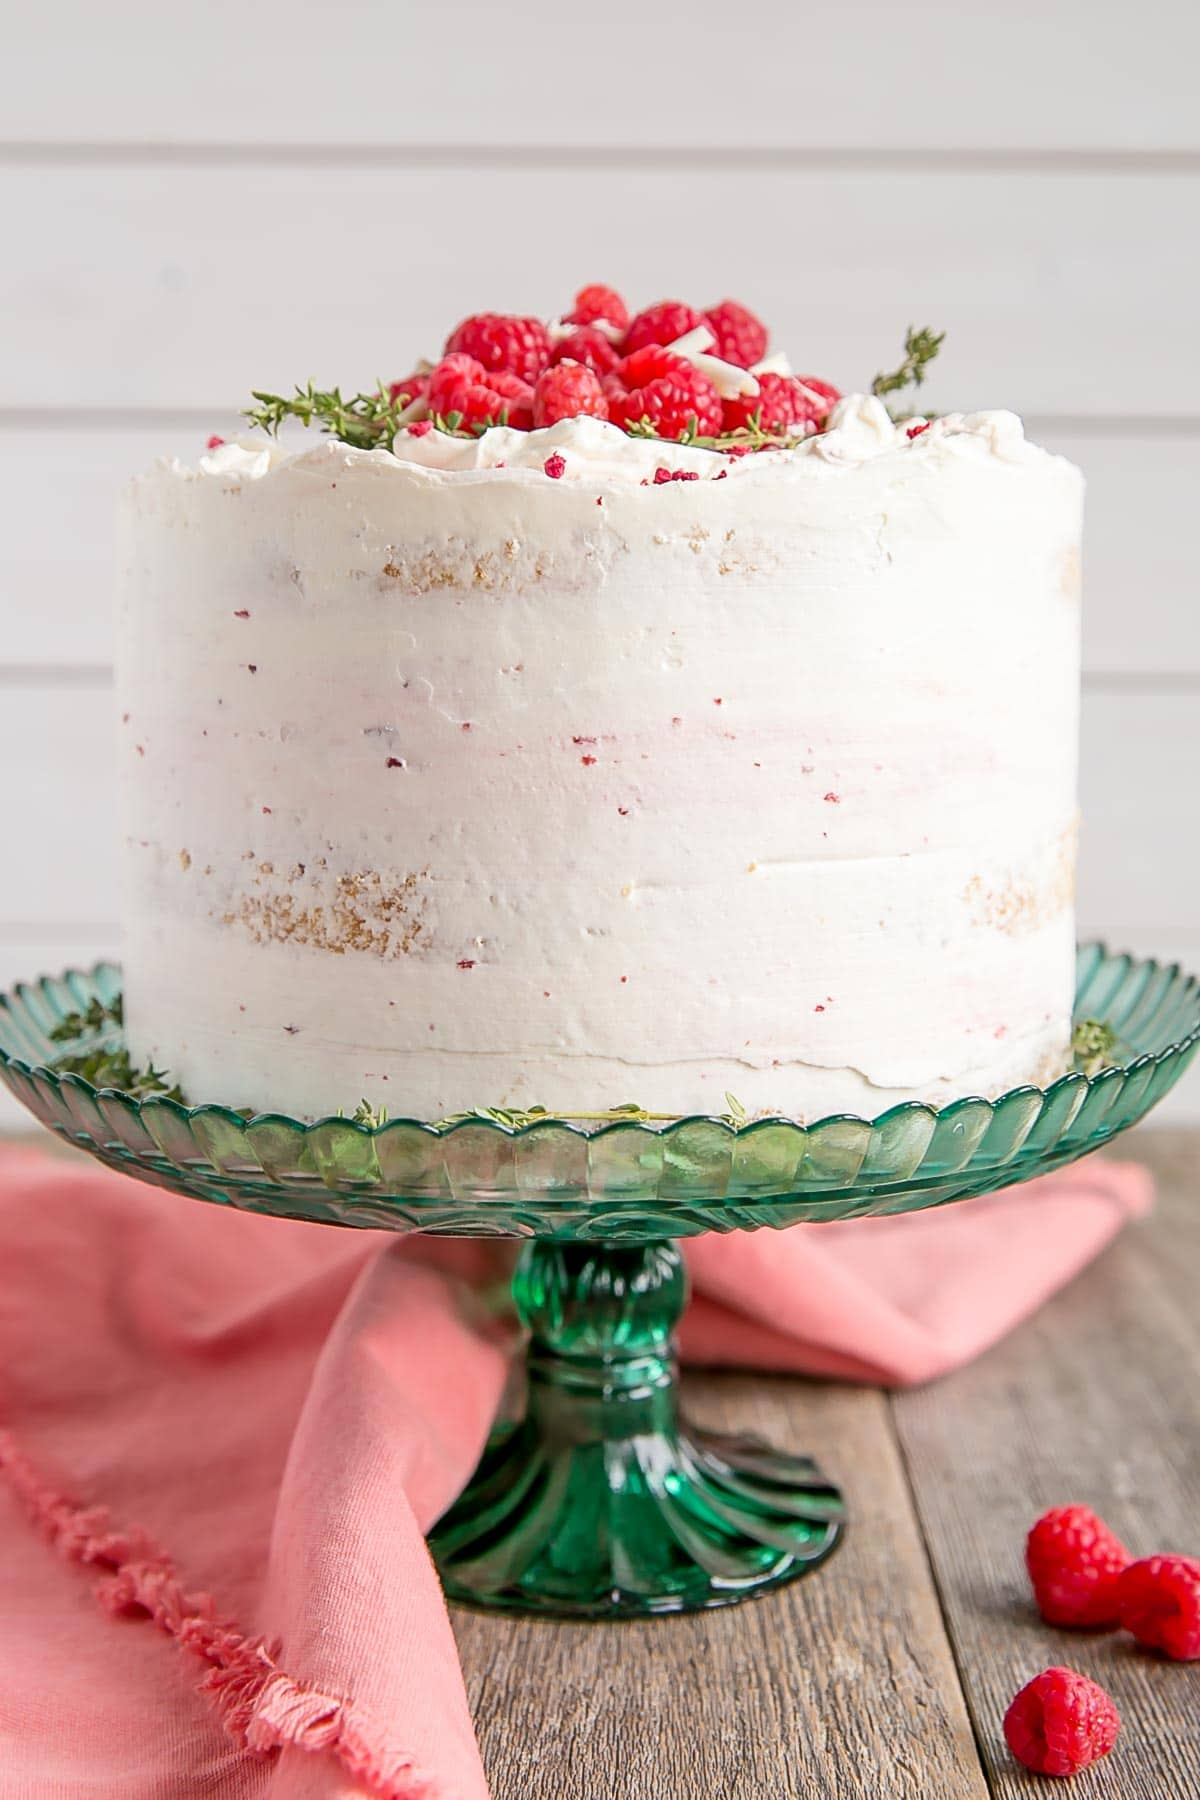 White chocolate cake with fresh raspberries and raspberry jam.